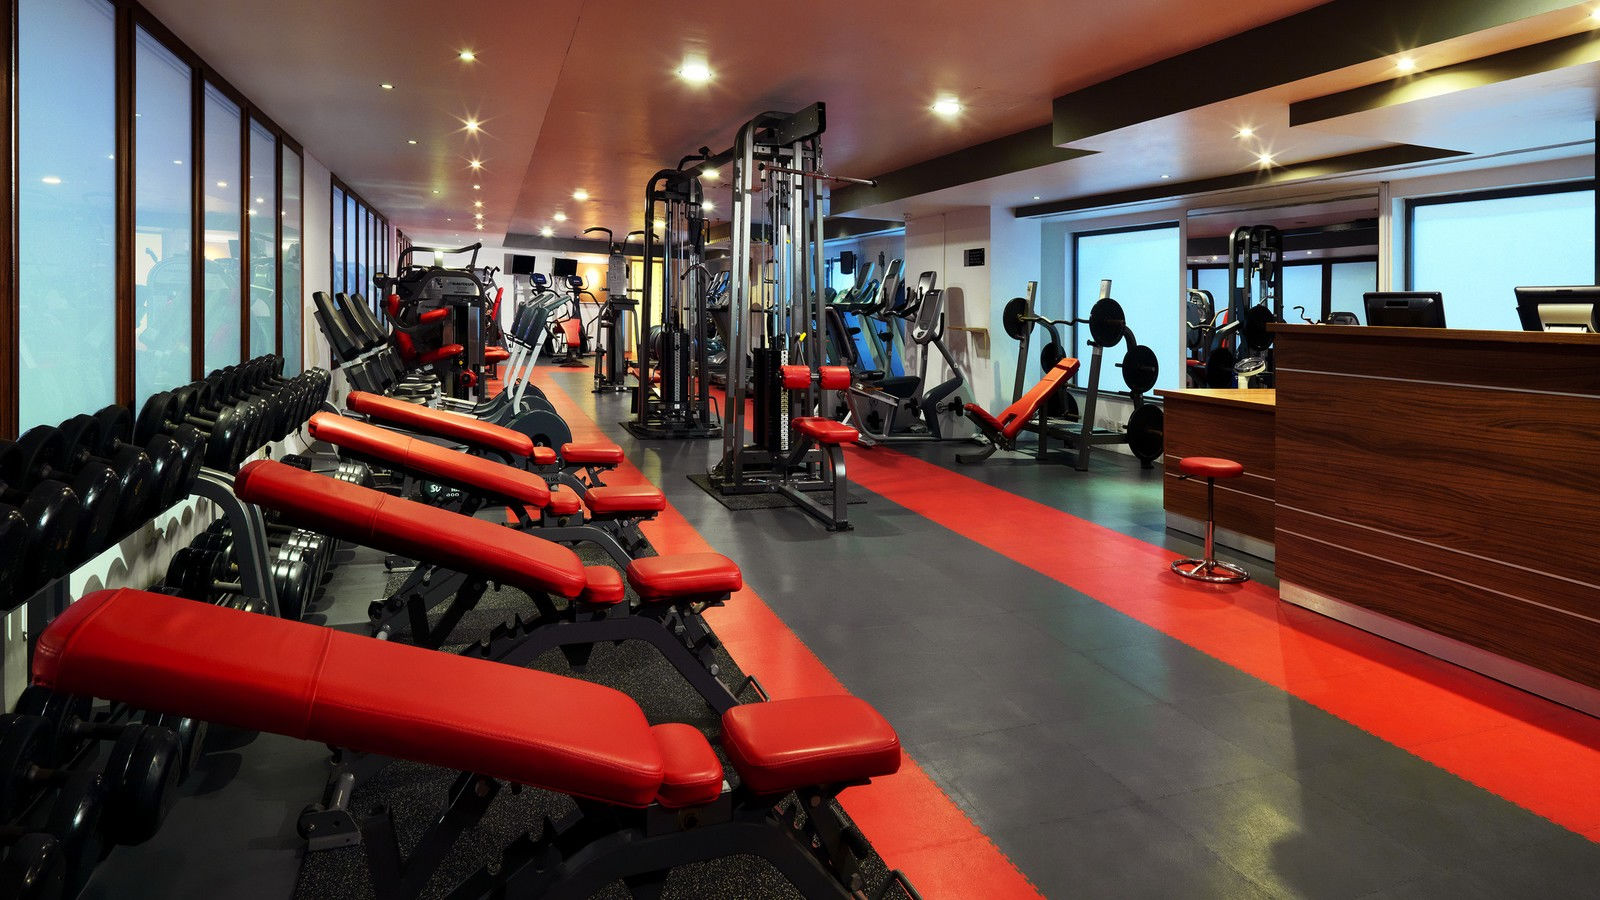 Discover the Lotus Fitness Centre at Le Méridien St. Julians Hotel & Spa